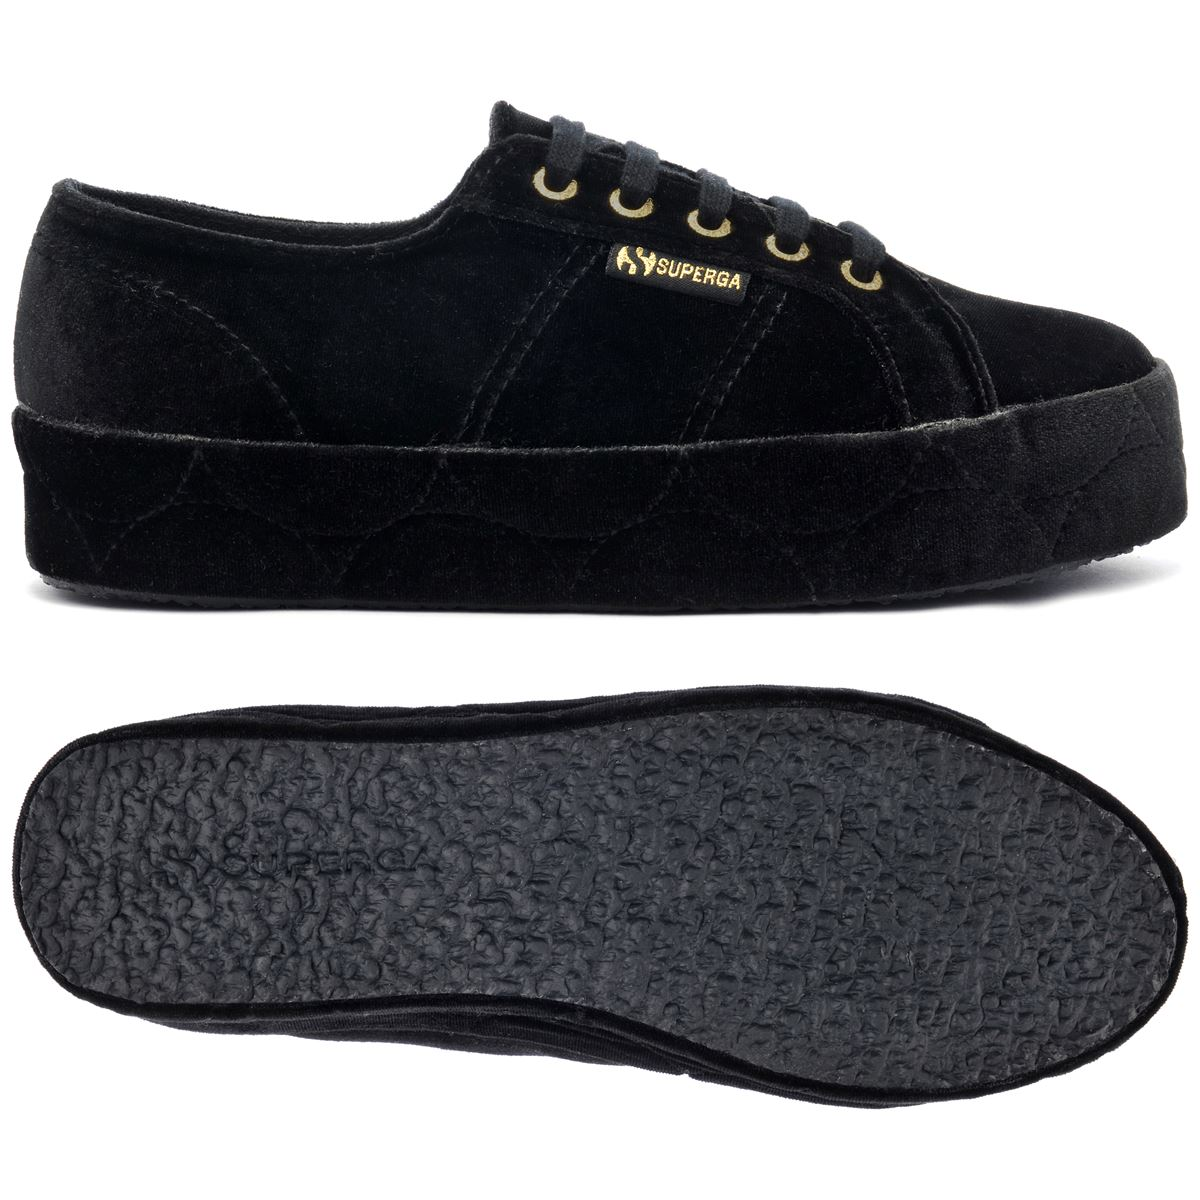 Superga Lady Shoes Woman 2730-VELVETCHENILLEW FCOVERED CHIC Wedge